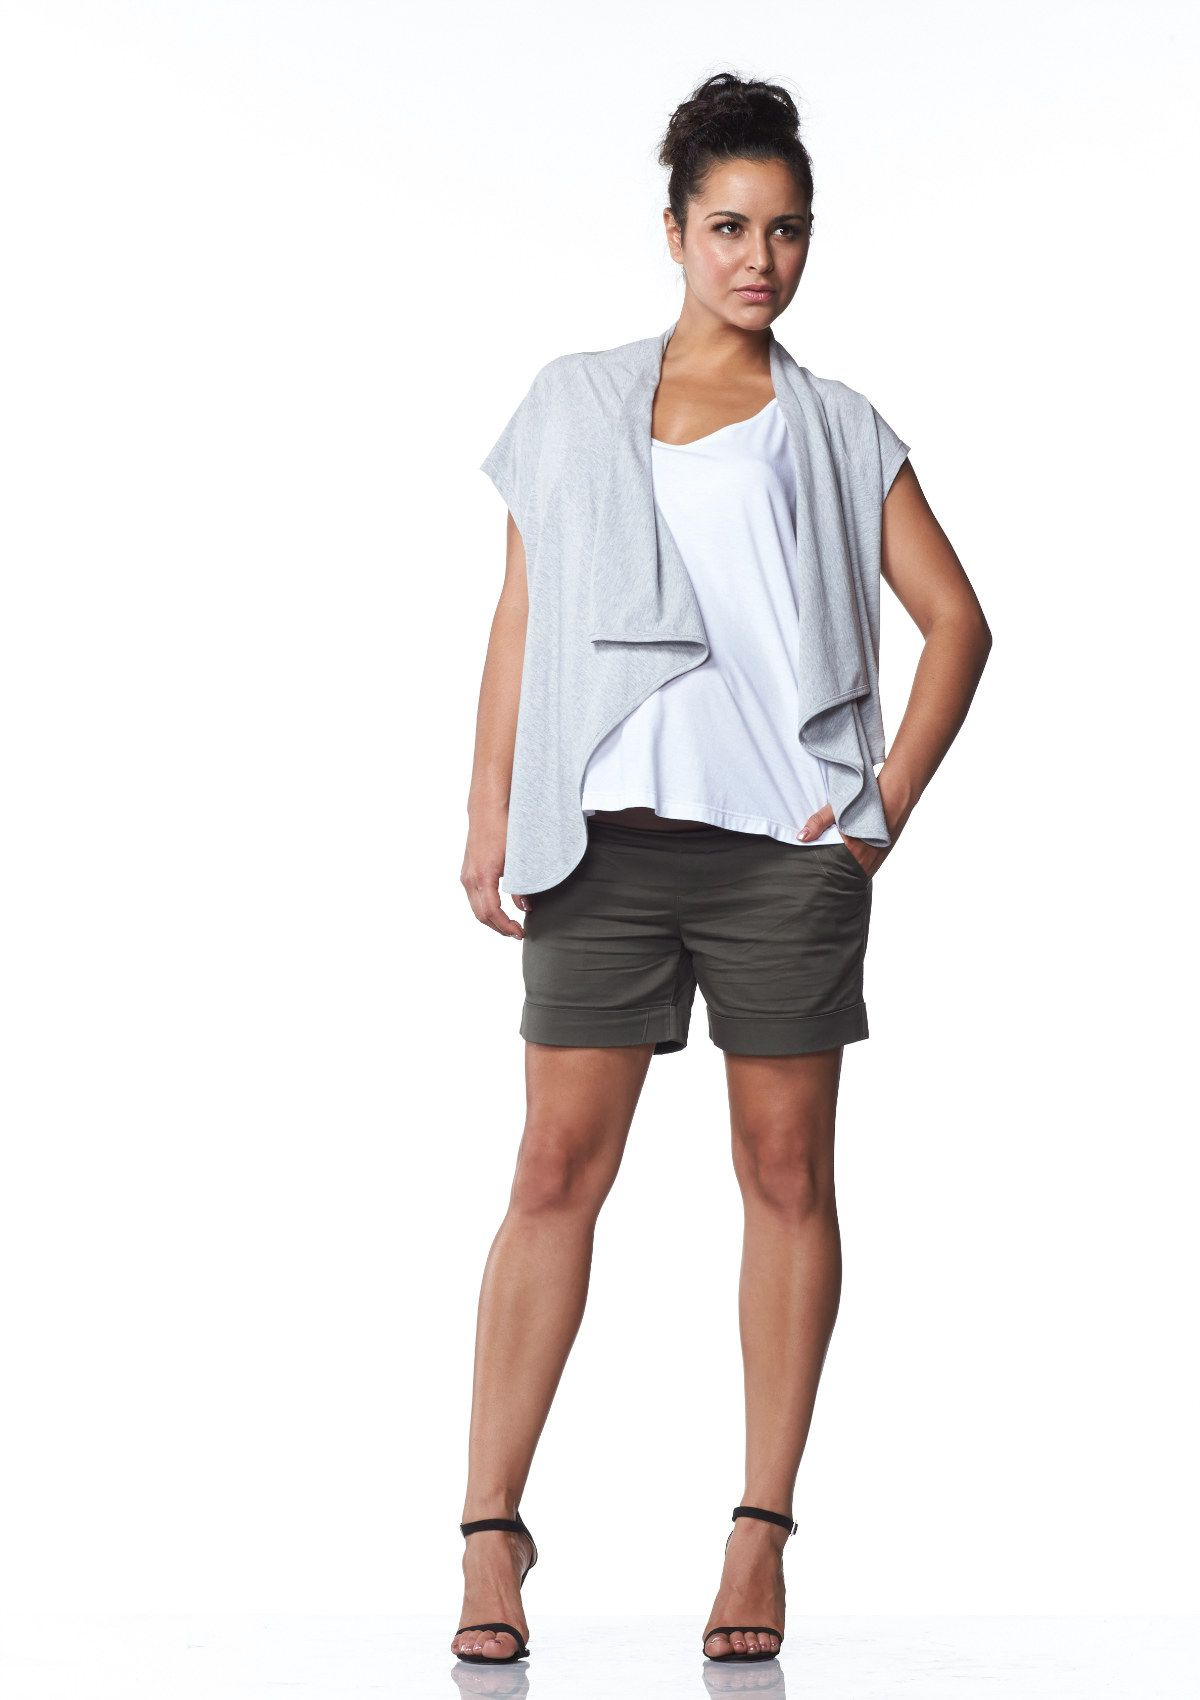 Summer cardi maternity wear maternity clothes online australia summer cardi maternity wear maternity clothes online australia soon maternity ombrellifo Image collections